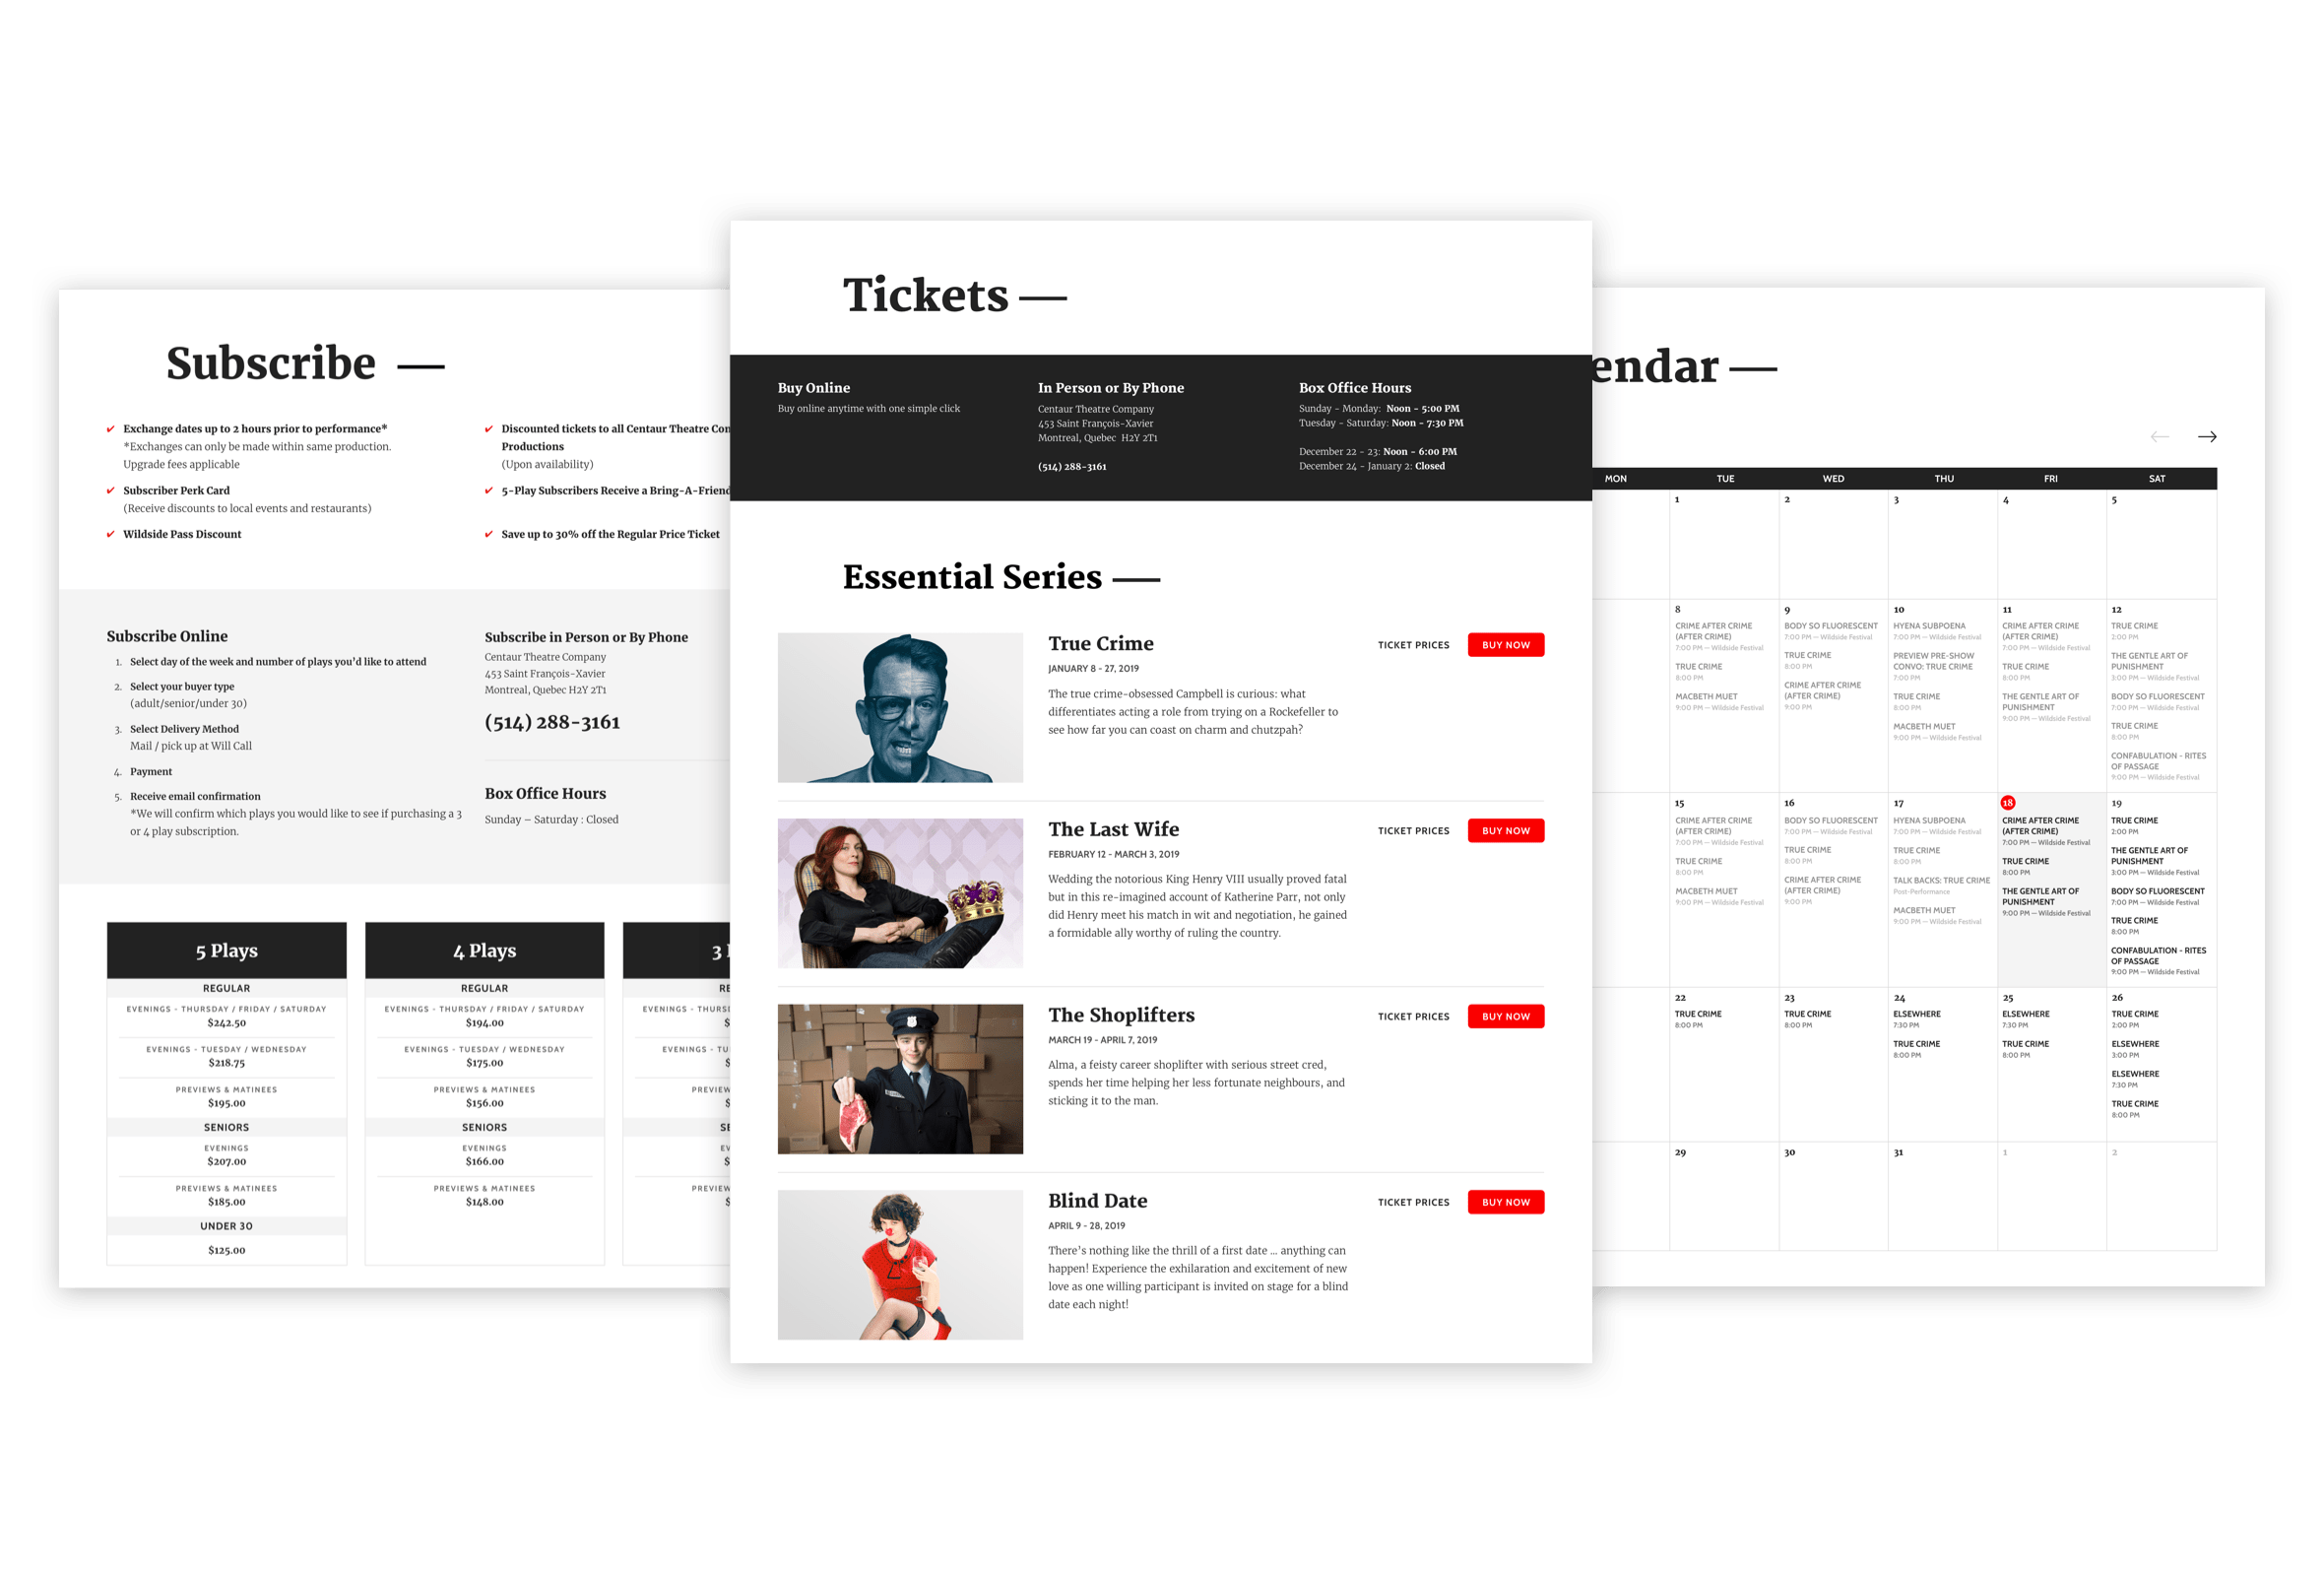 Desktop visual of the Subscribe, Tickets and Calendar pages